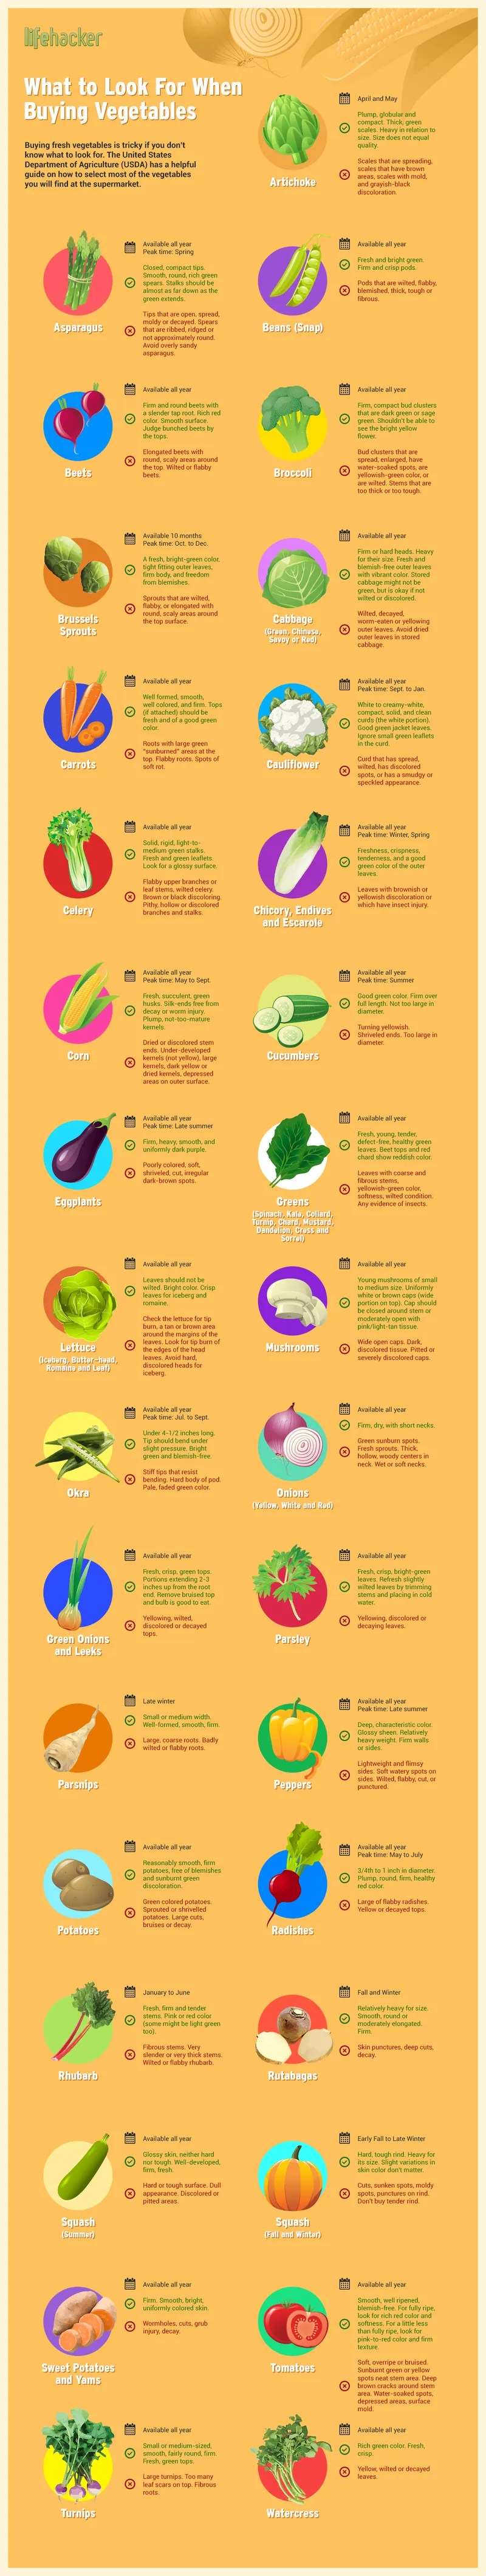 Buying Vegetables Guide [Infographic] | ecogreenlove